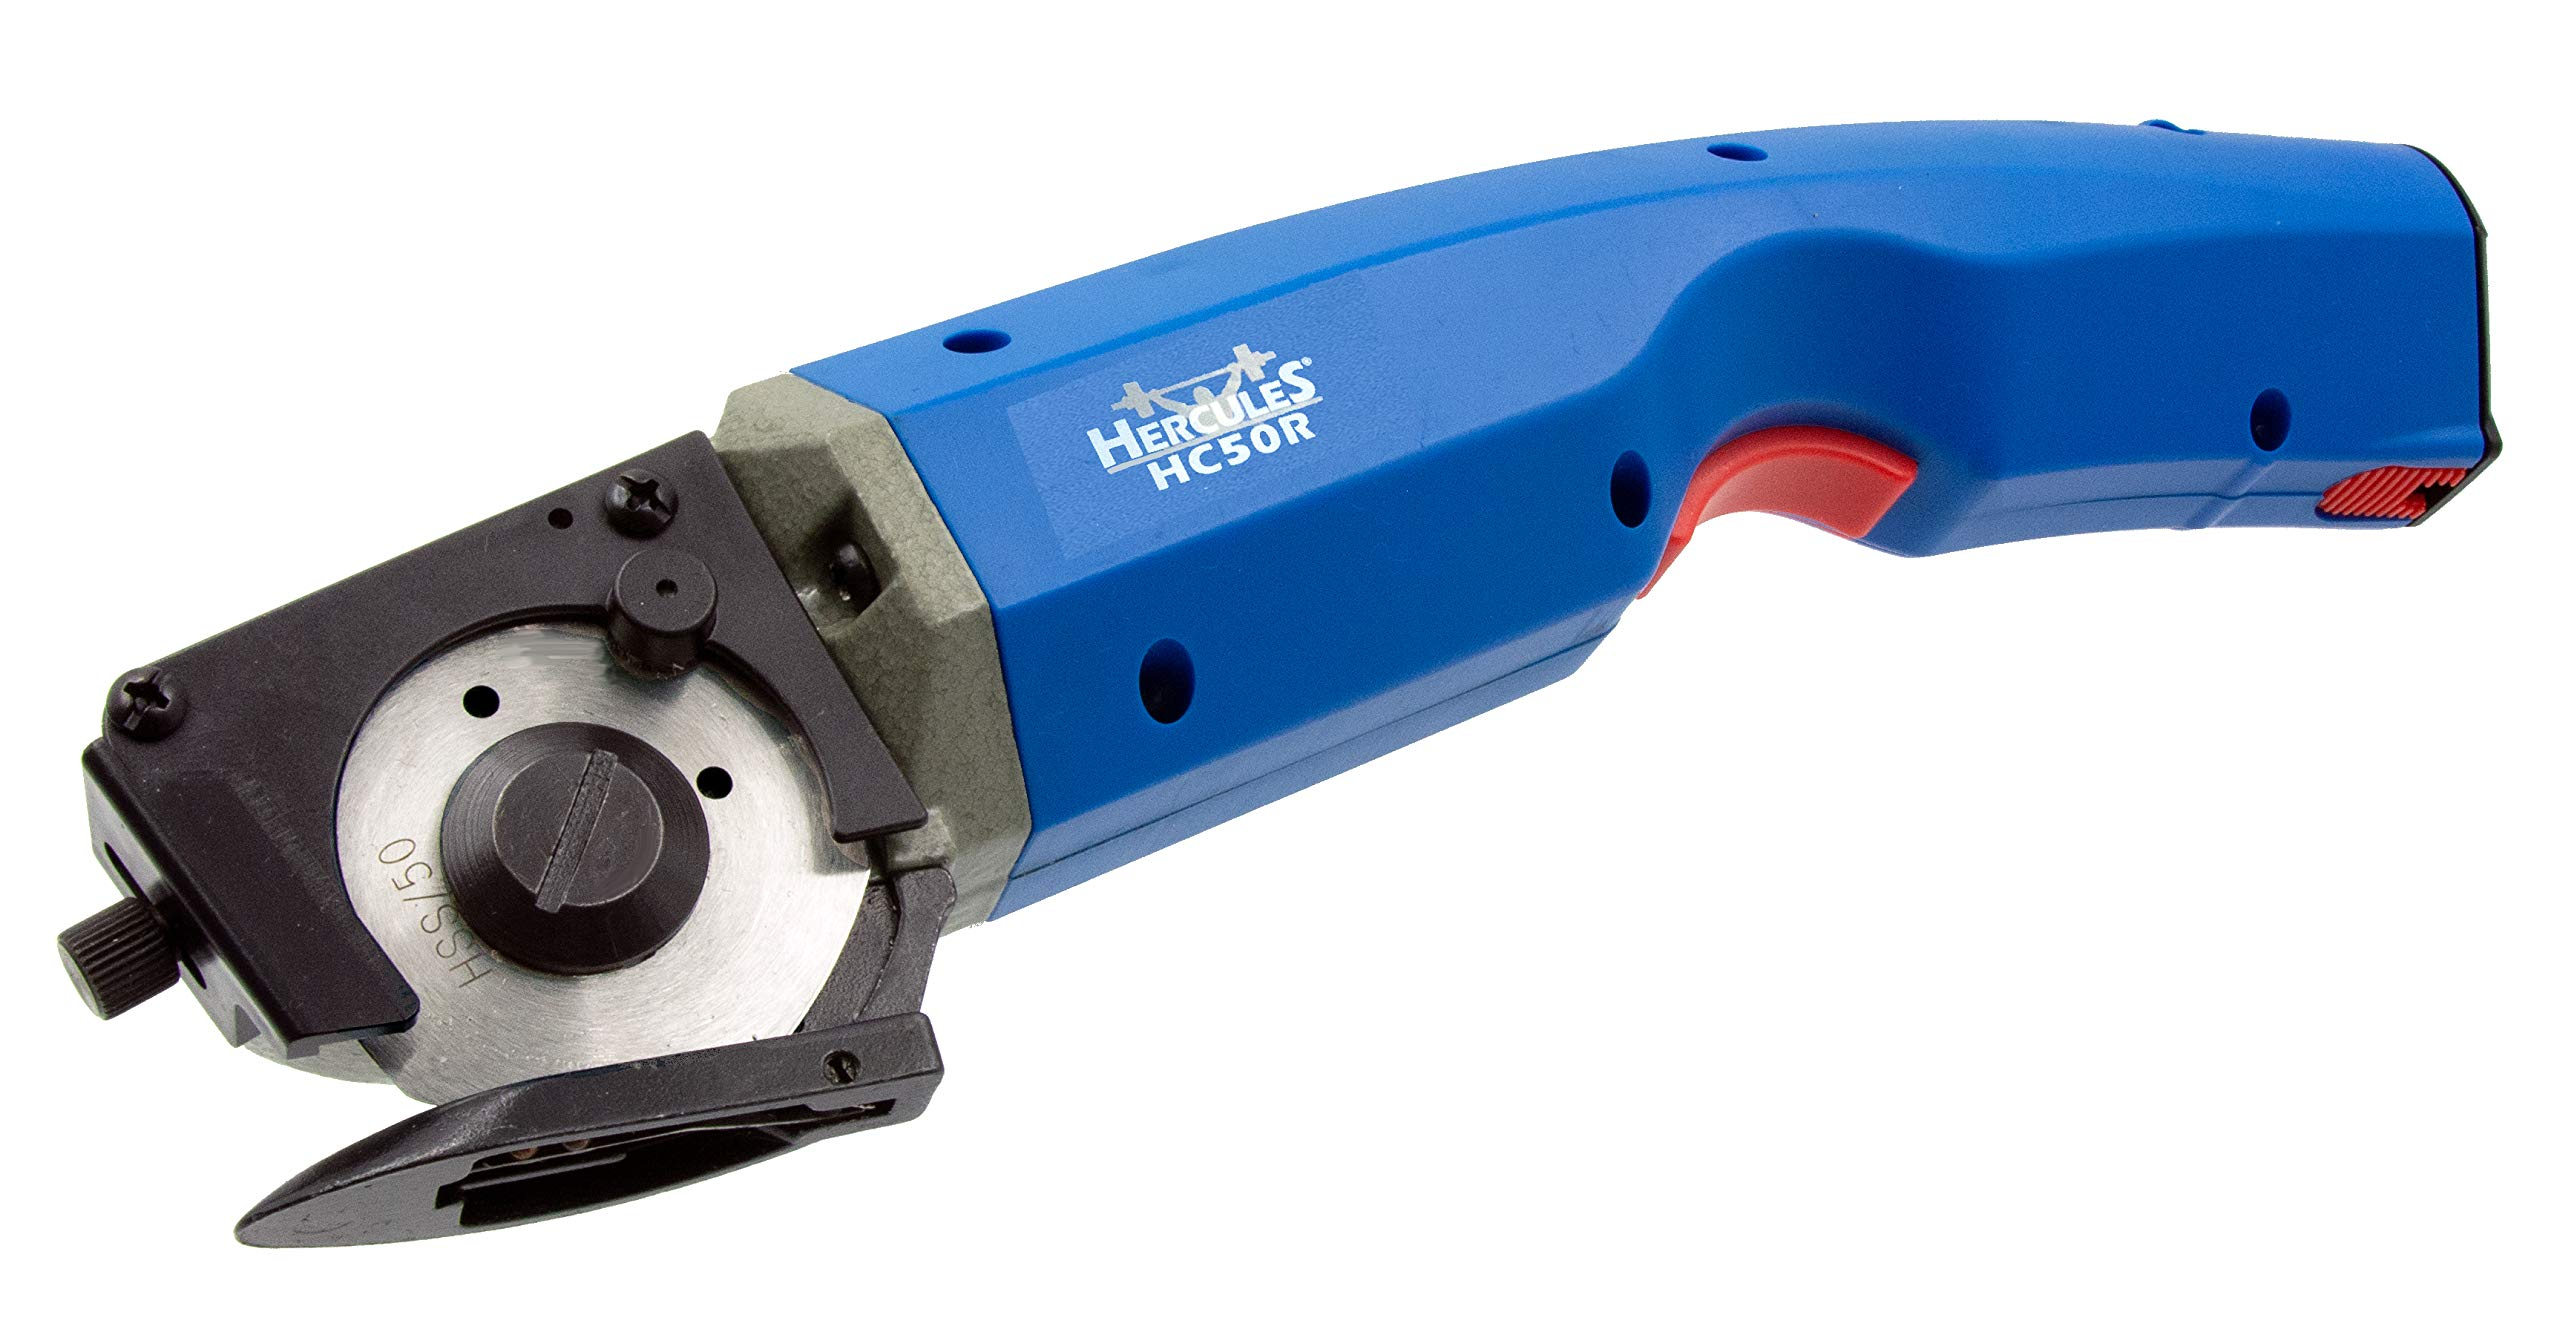 Hercules HC50R Electric Cordless Rotary Shear - Rechargeable, Multi-Layer Cutter for Light to Medium Weight Natural & Synthetic Fabrics by HERCULES